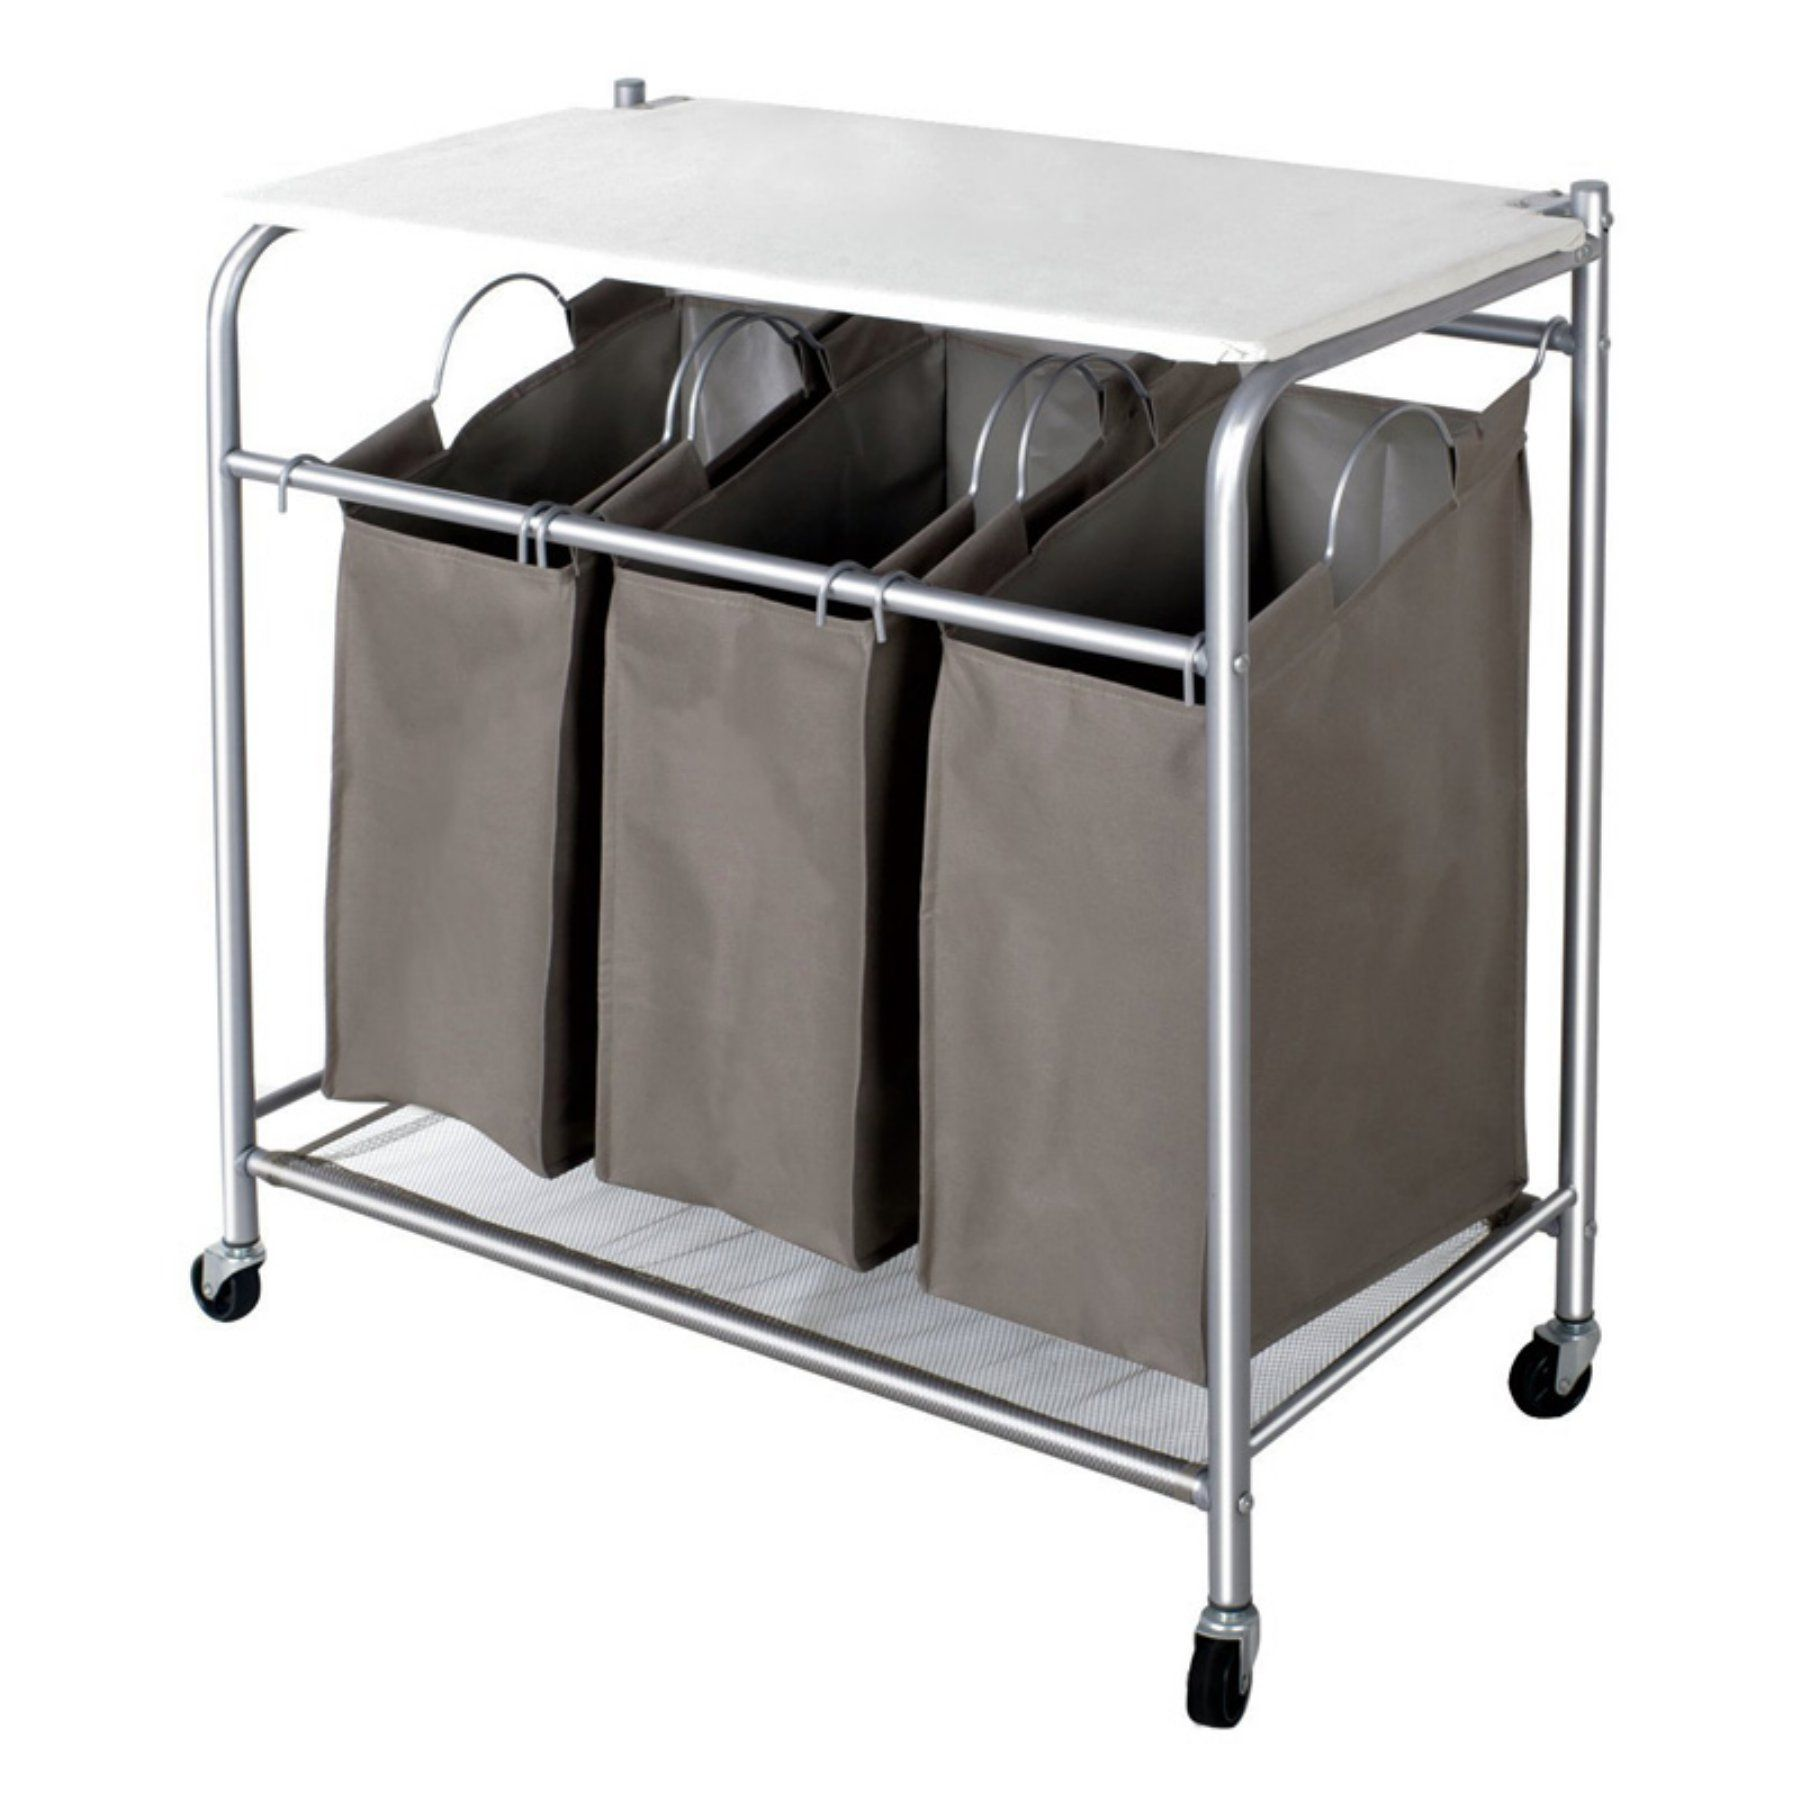 Laundry Sorter With Ironing Board And 3 Removable Bags By